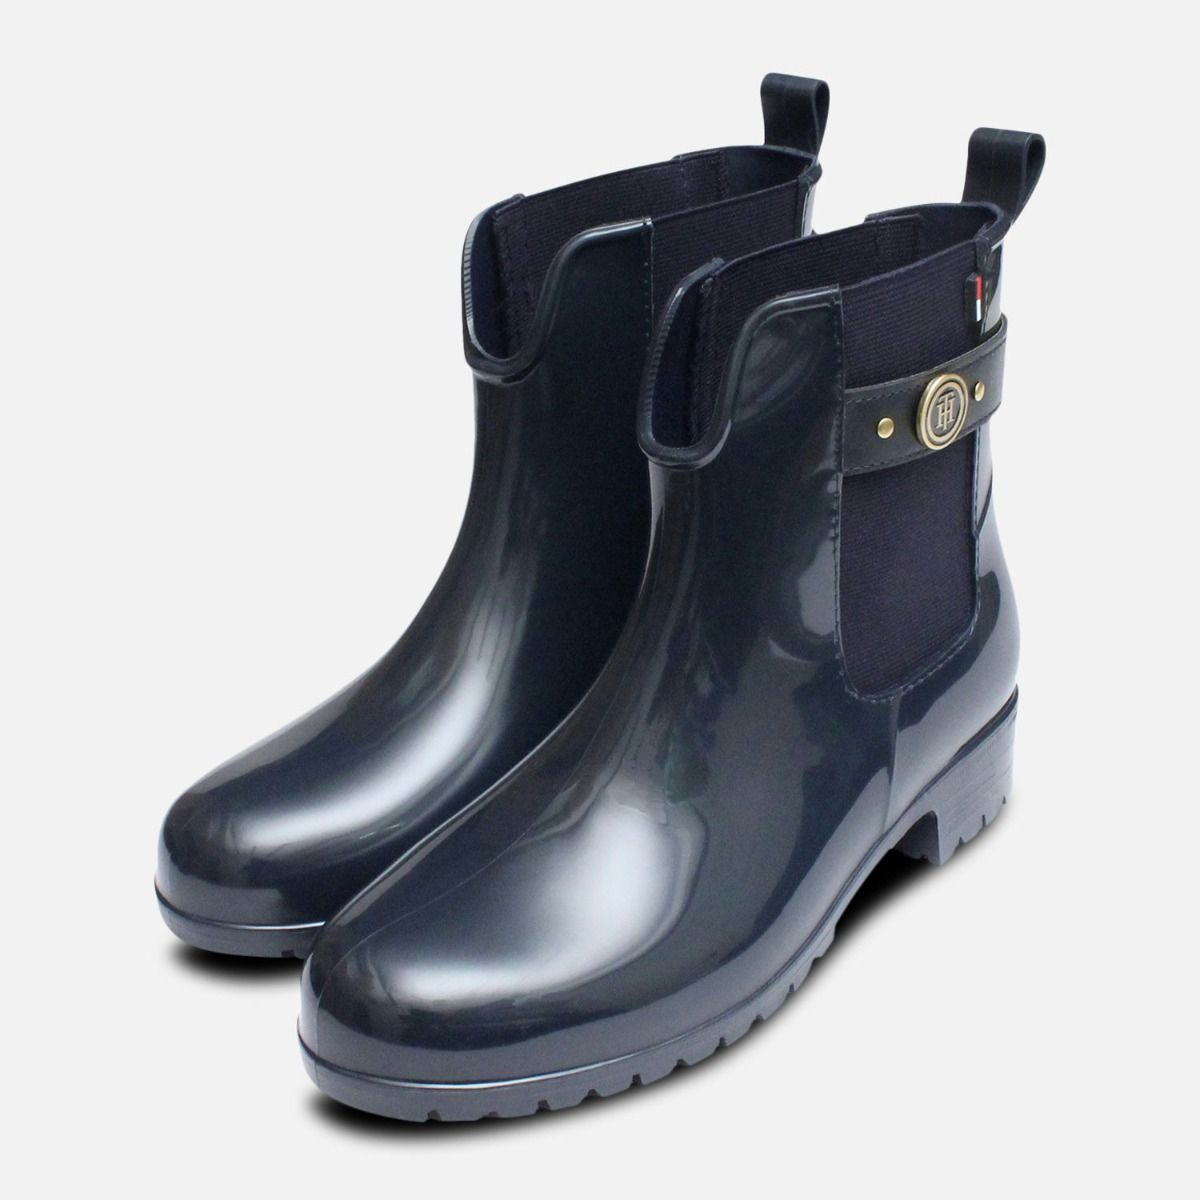 b0c2ac6f8eba83 Navy Blue Oxley Tommy Hilfiger Ladies Rubber Wellies